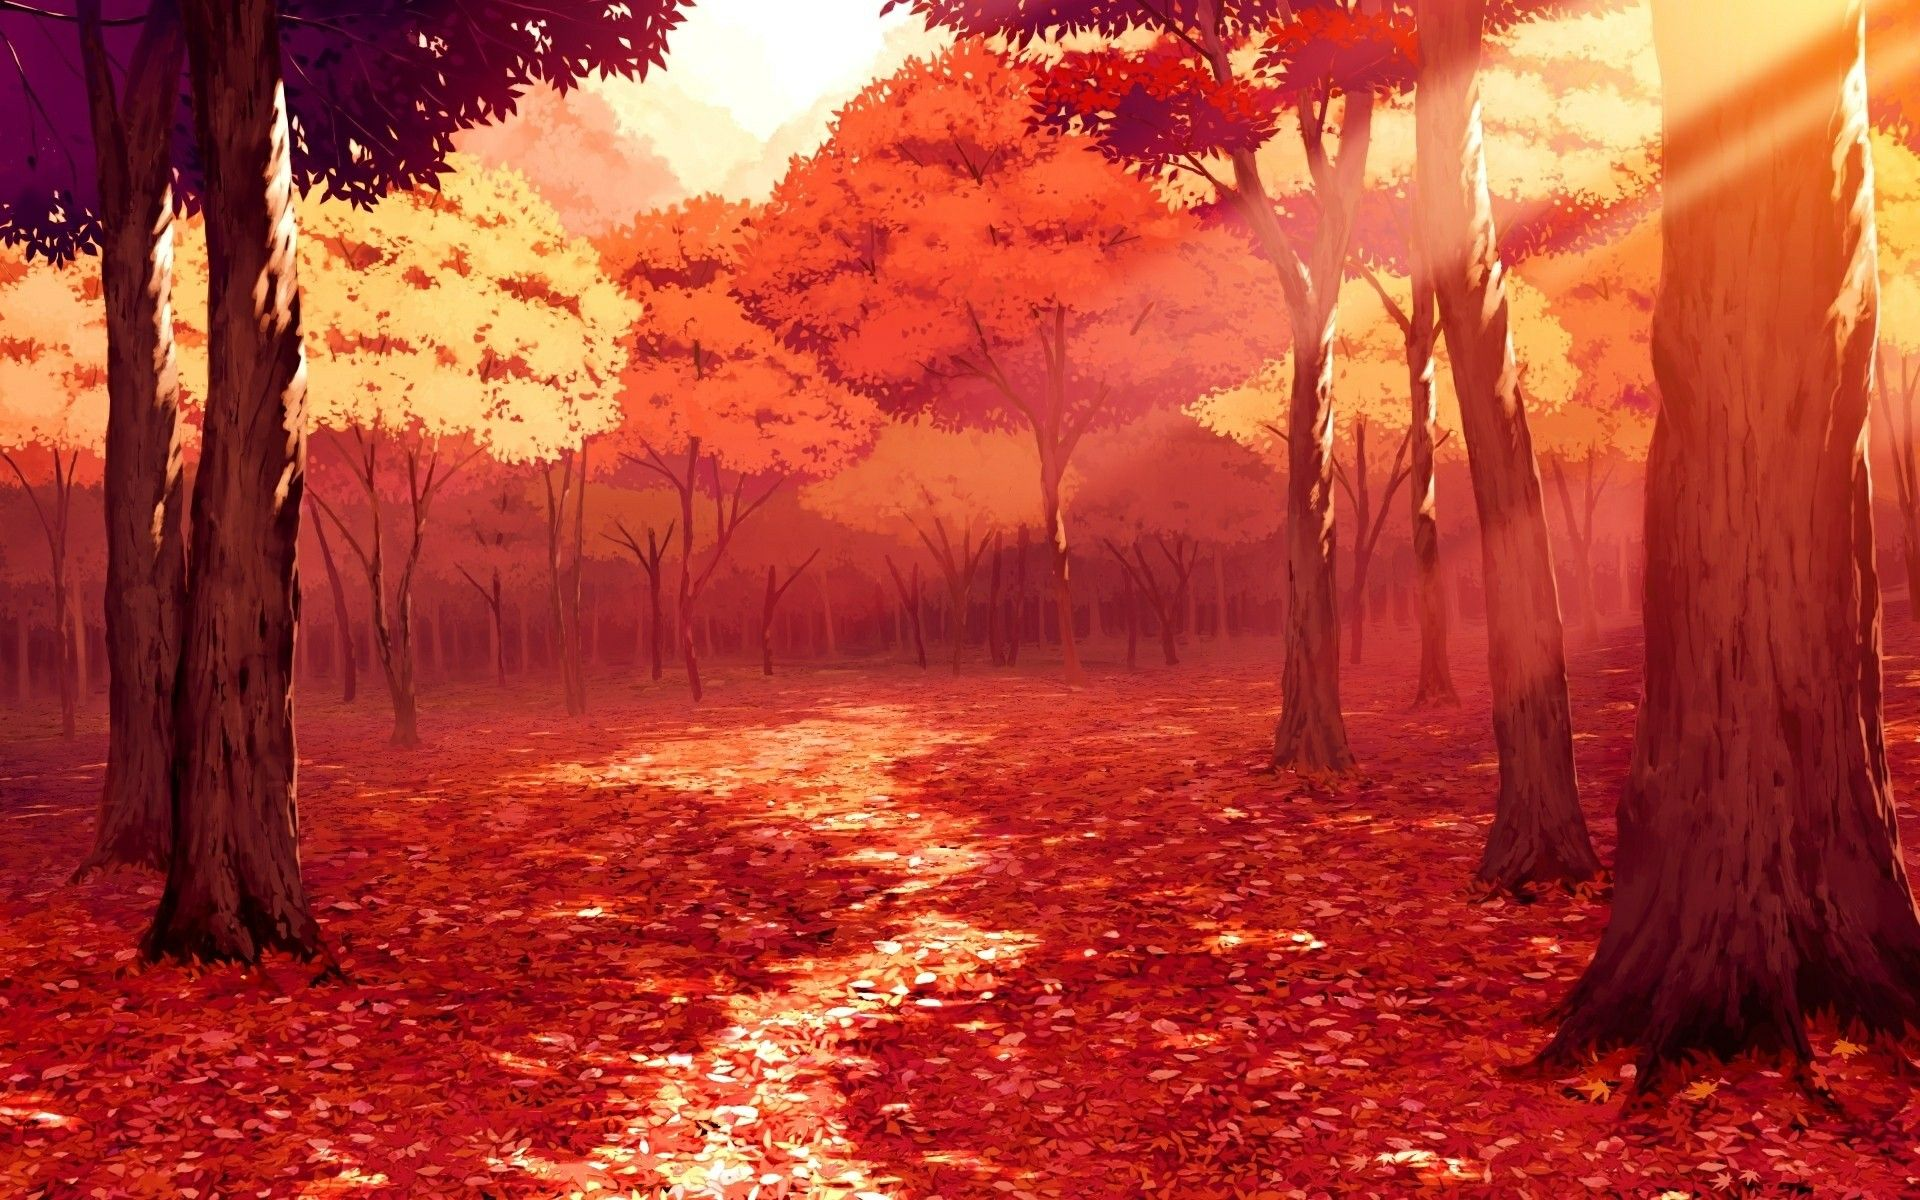 Fall Autumn Trees Forest Red Leaves Pathway Anime Scenery Anime Scenery Autumn Scenery Scenery Wallpaper